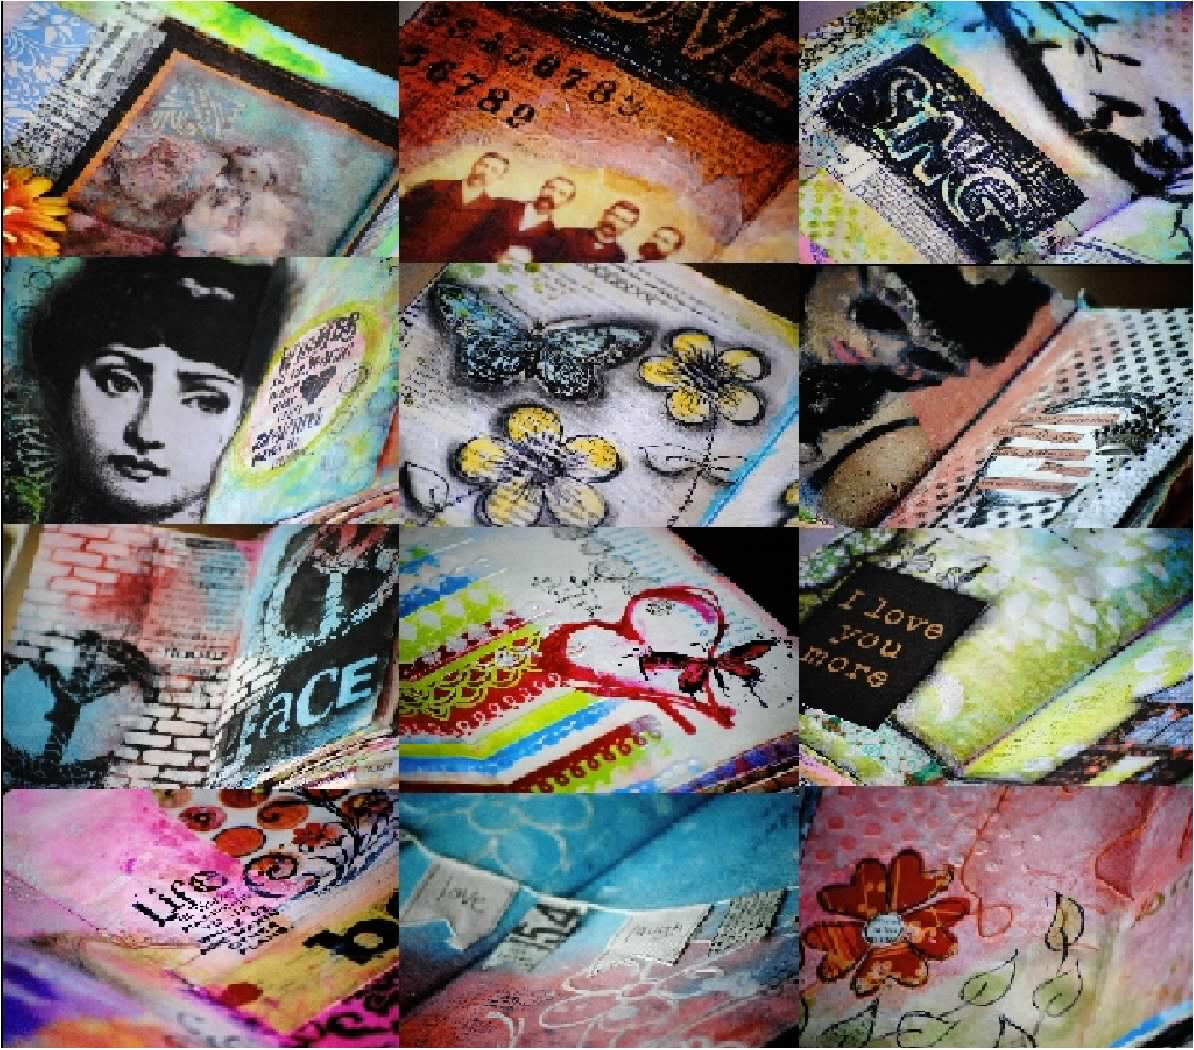 Collage of art journal images designed by Christy Riopel